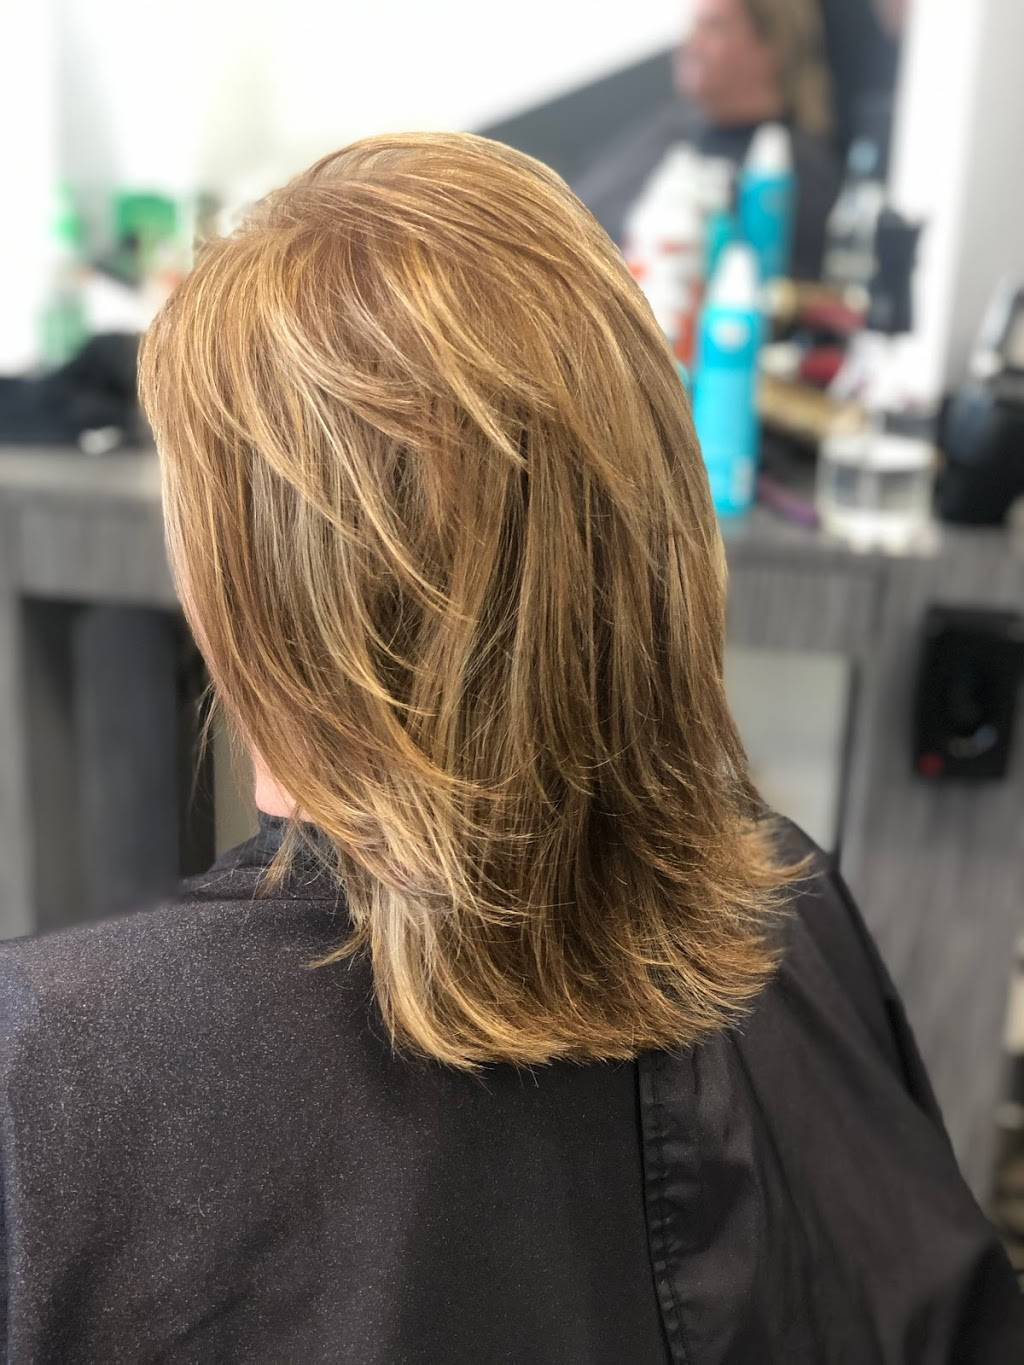 Cuts 109 - hair care    Photo 6 of 8   Address: 1228 Guilford College Rd #103, Jamestown, NC 27282, USA   Phone: (336) 338-0741